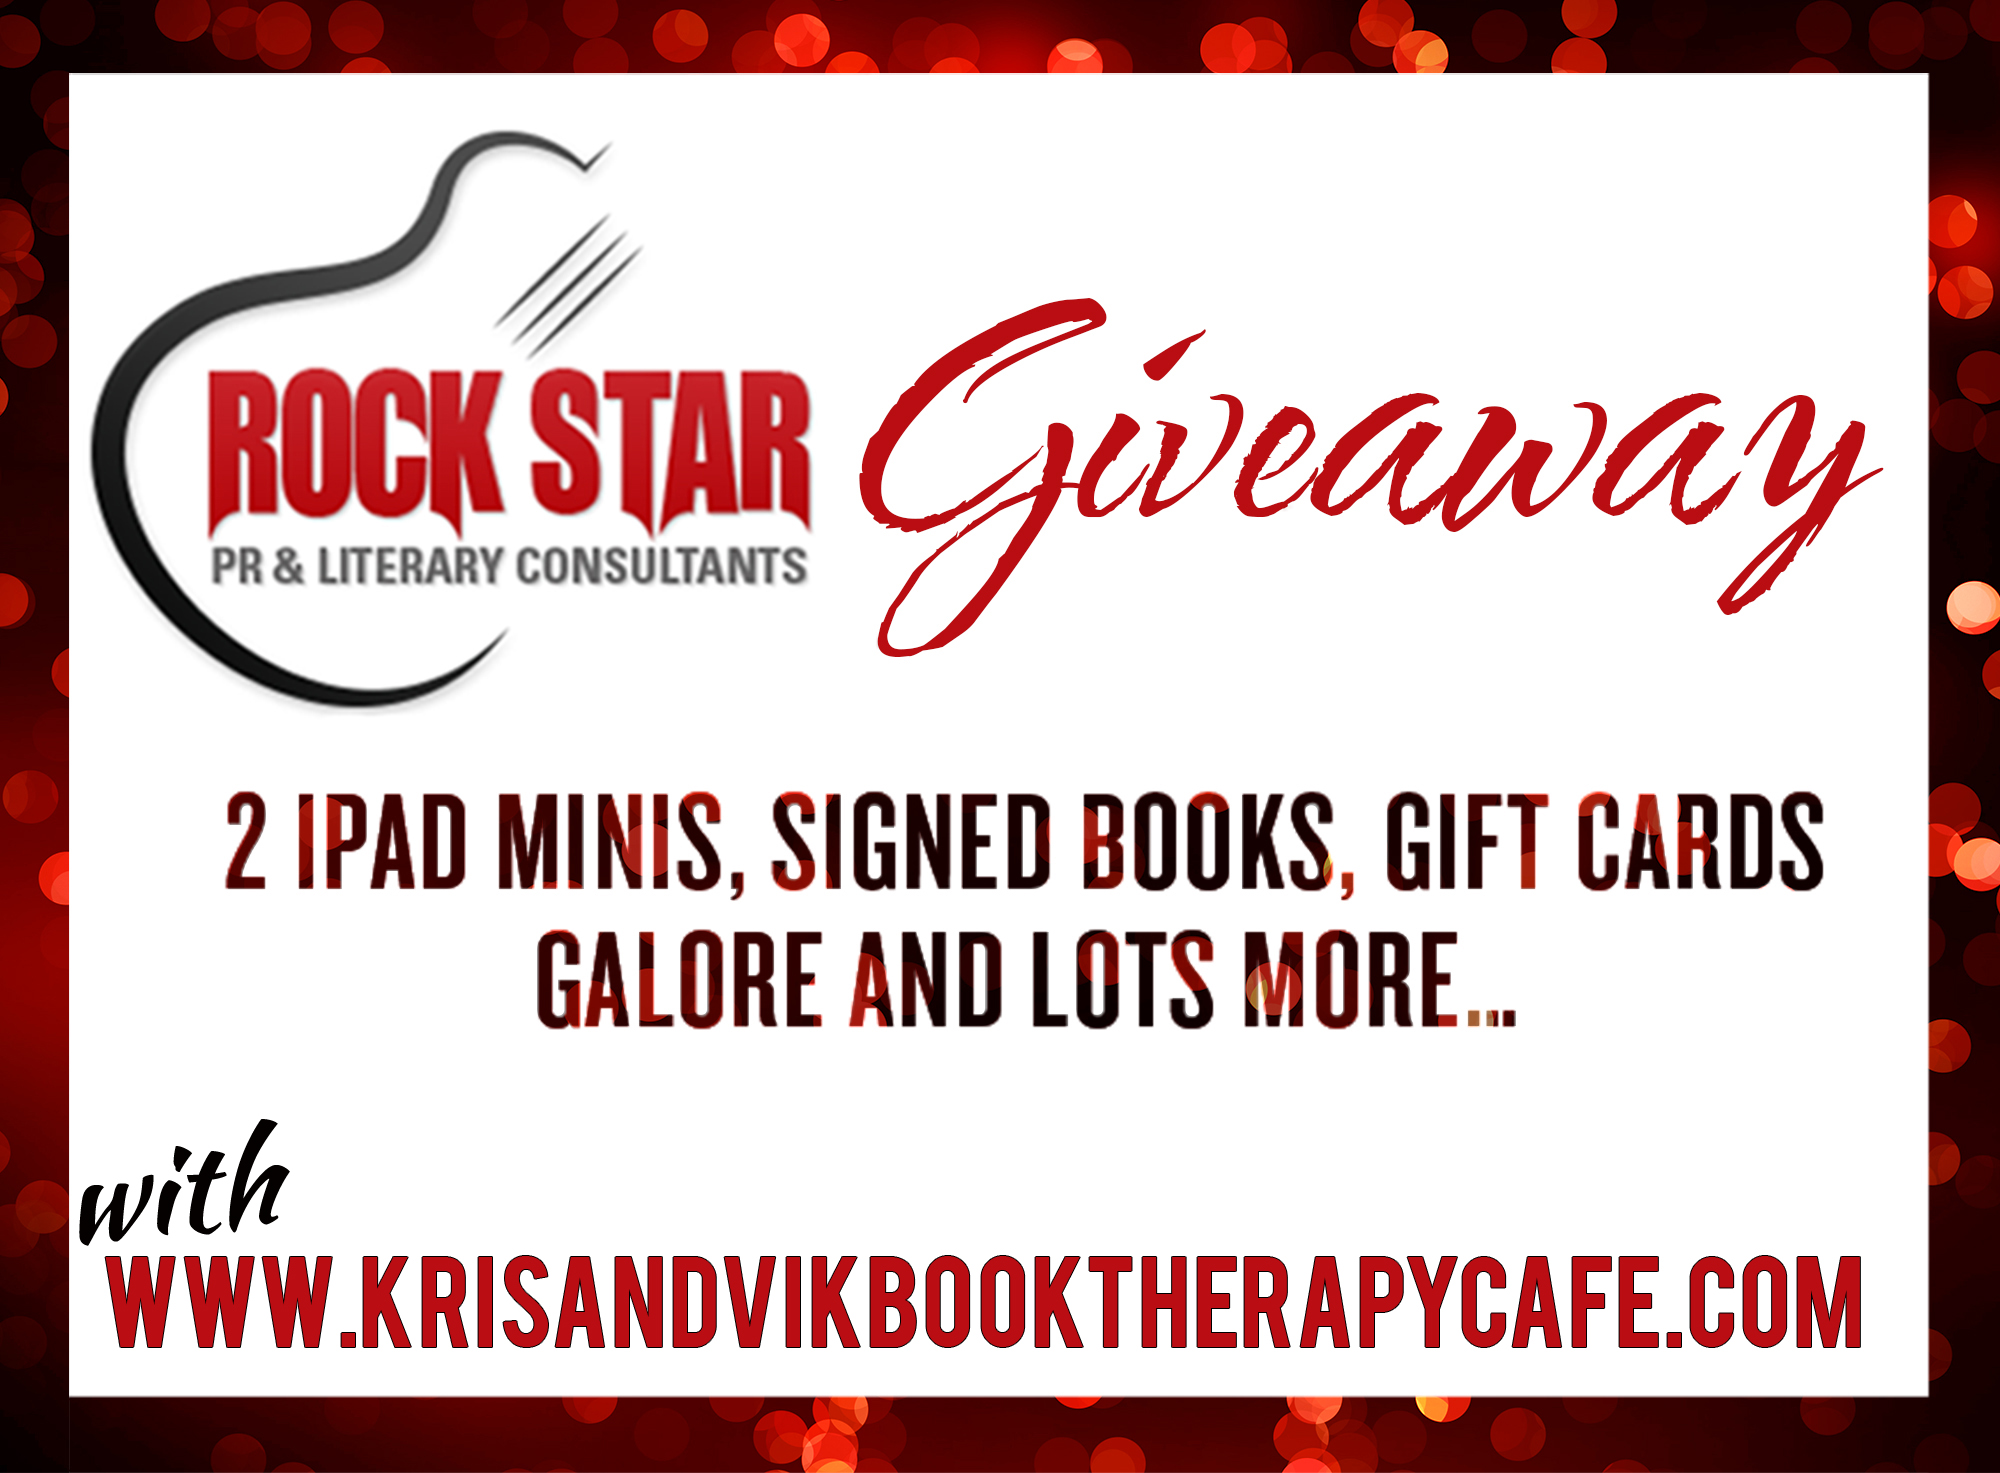 ❄ ❅ ❆Rocking Around the Holidays with RockStarLit.com Authors & HUGE GIVEAWAY ☃ Day 22 Nicole Simone ❄ ❅ ❆